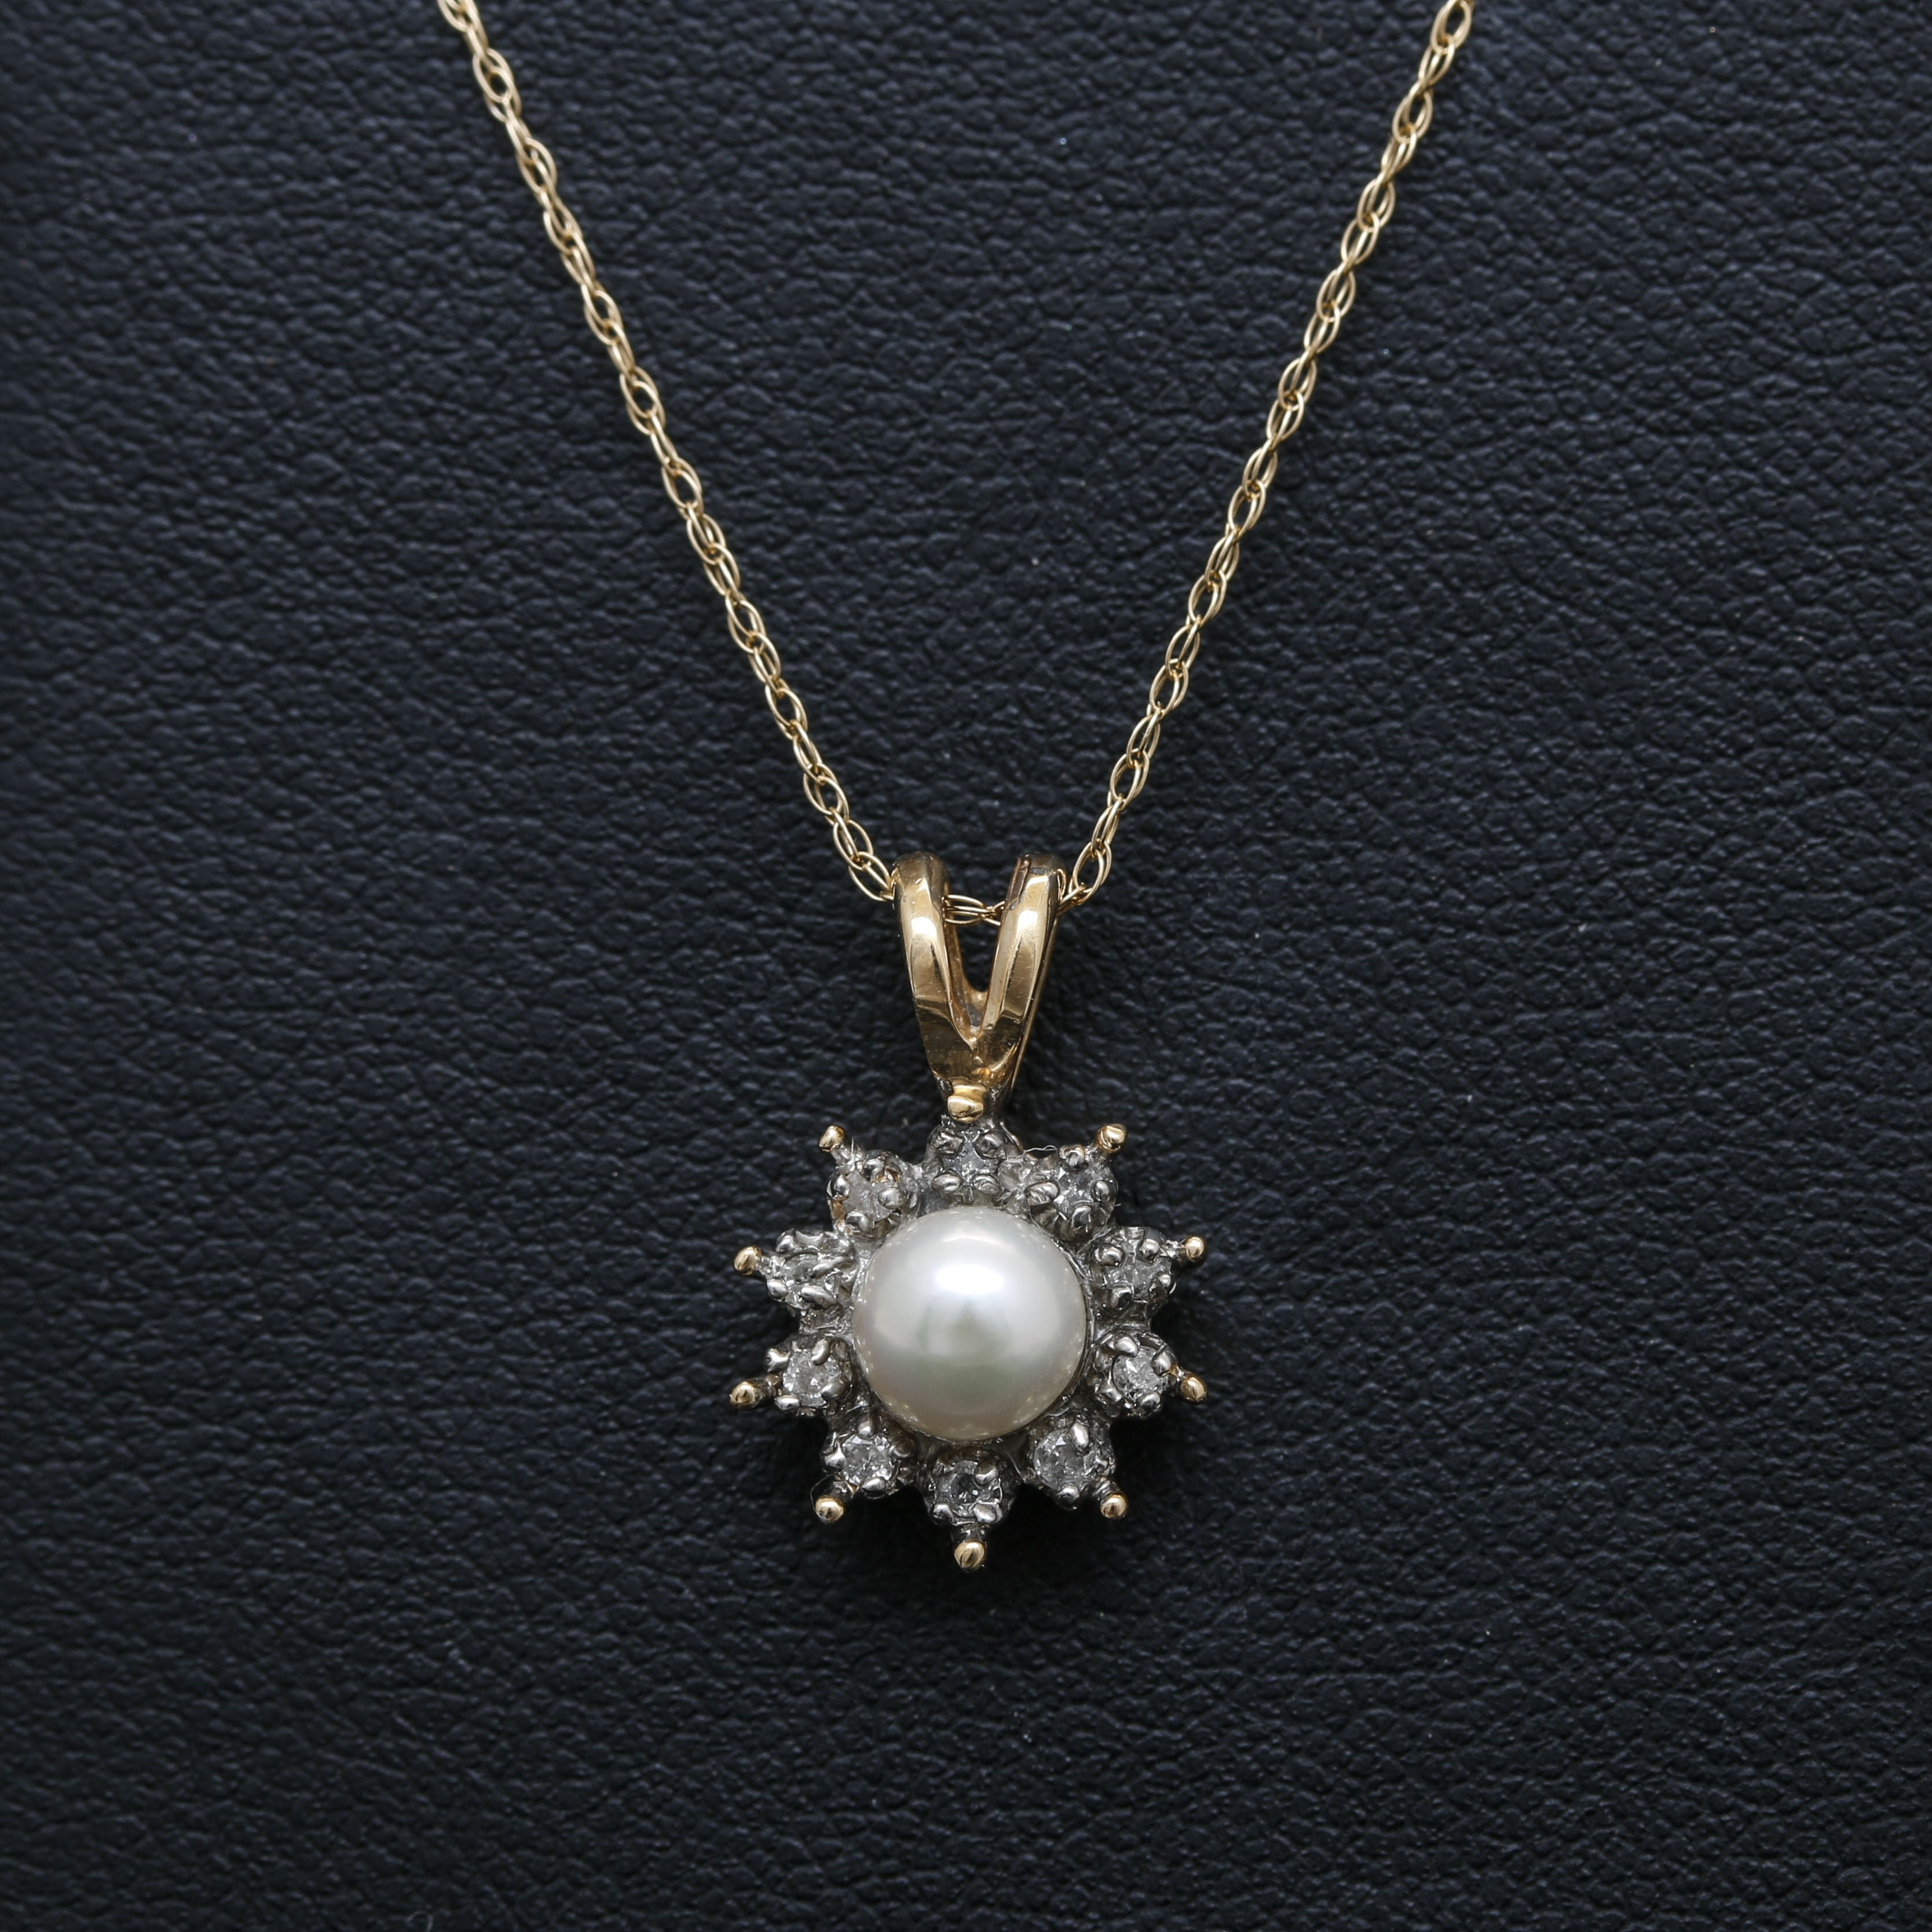 14K Yellow and White Gold Cultured Pearl and Diamond Necklace